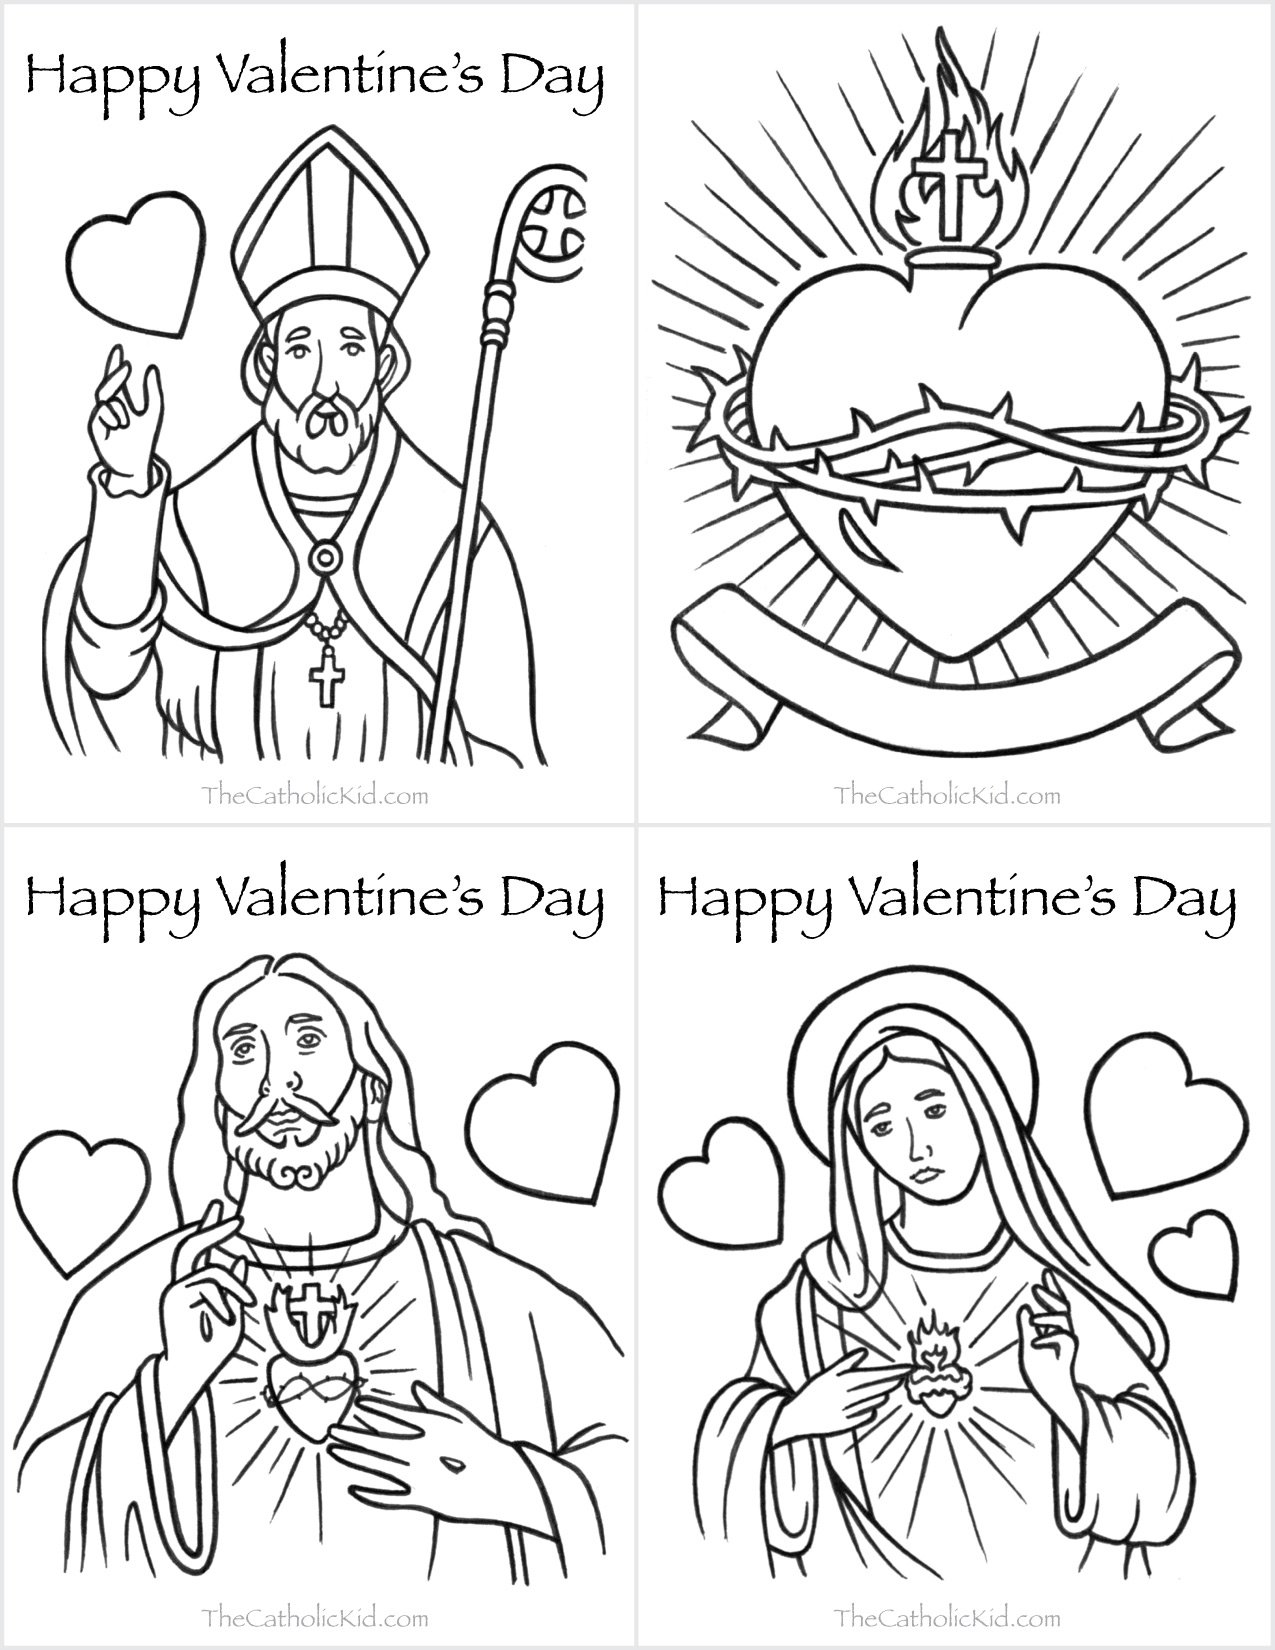 coloring pages for catholic preschoolers - photo#8